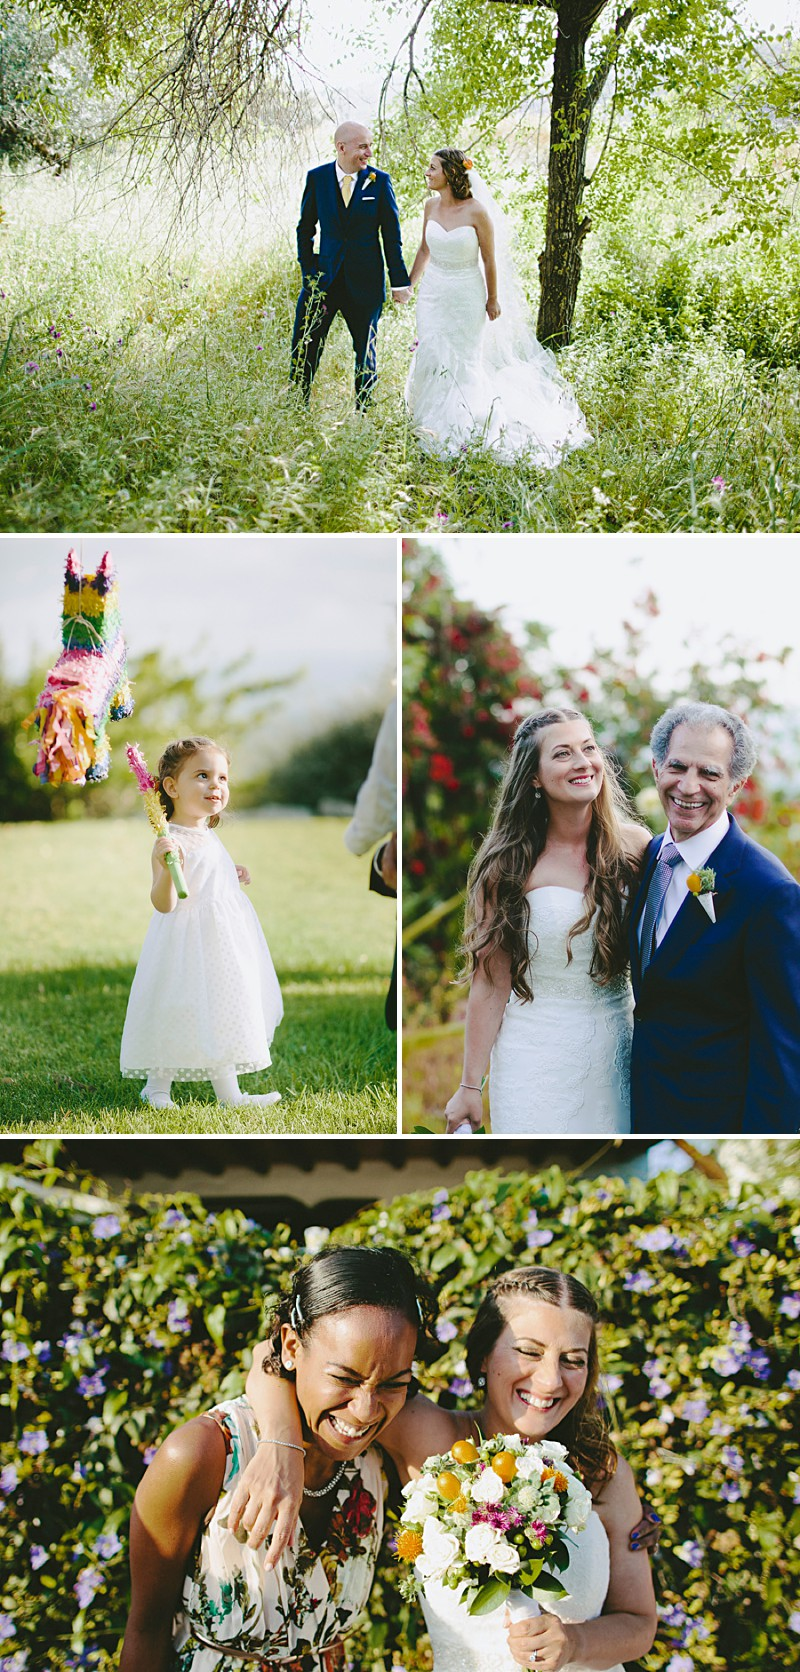 Destination Wedding In Gaucin In Spain With An Orange And Navy Colour Scheme And A La Sposa Wedding Dress With Photography By David Jenkins._0005